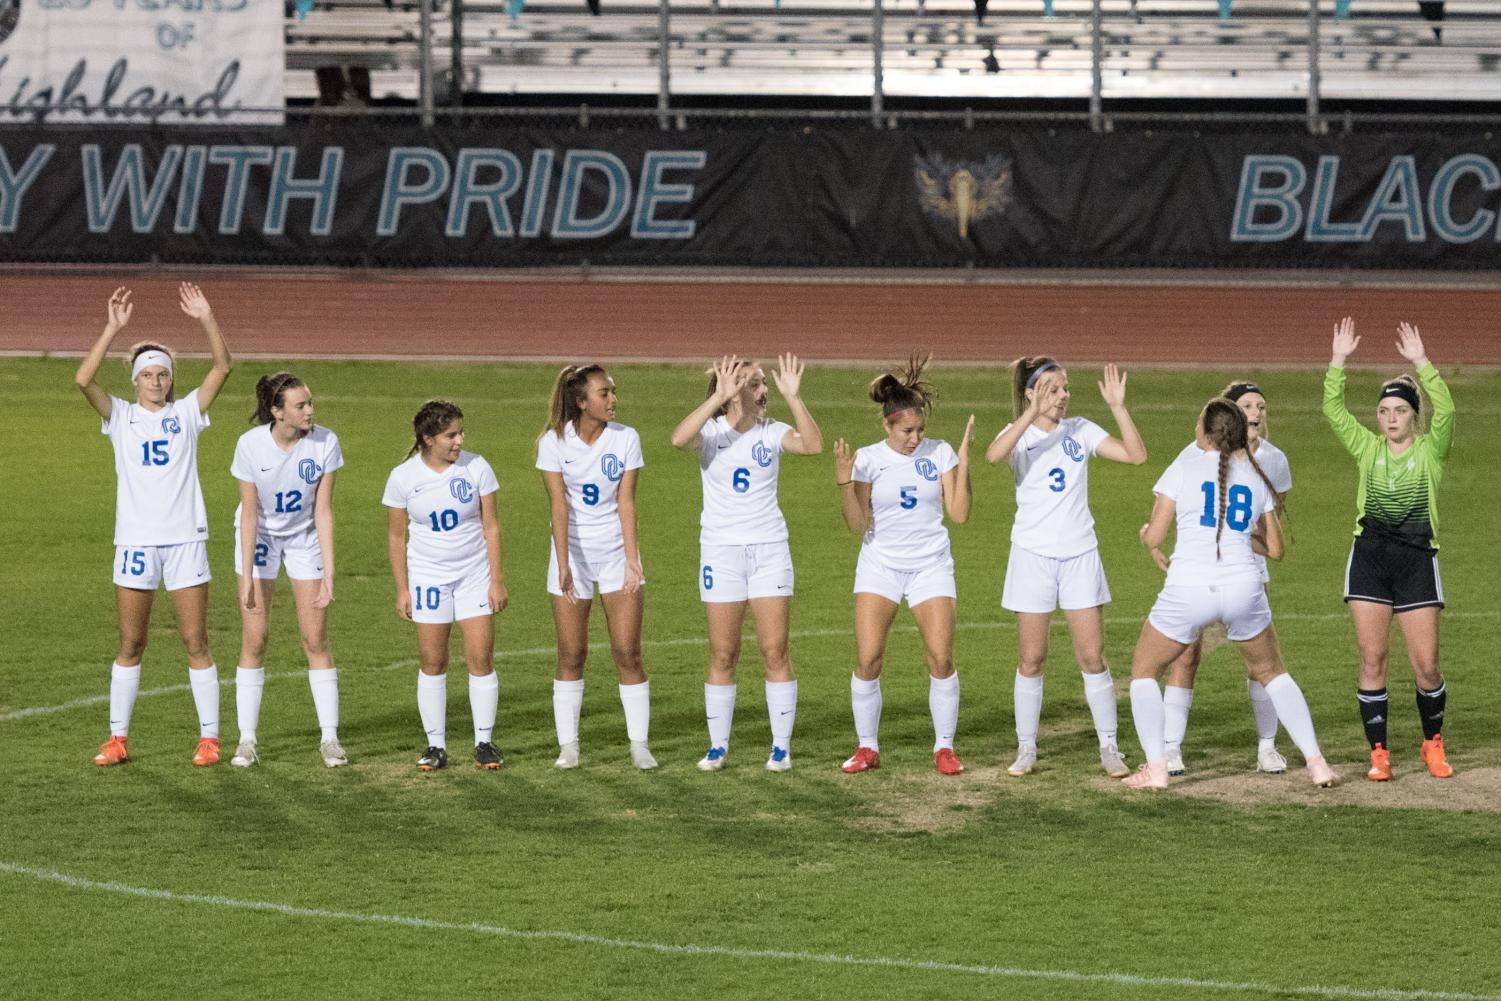 Varsity girls soccer prepares for their game by announcing their starting lineup for the night ahead.